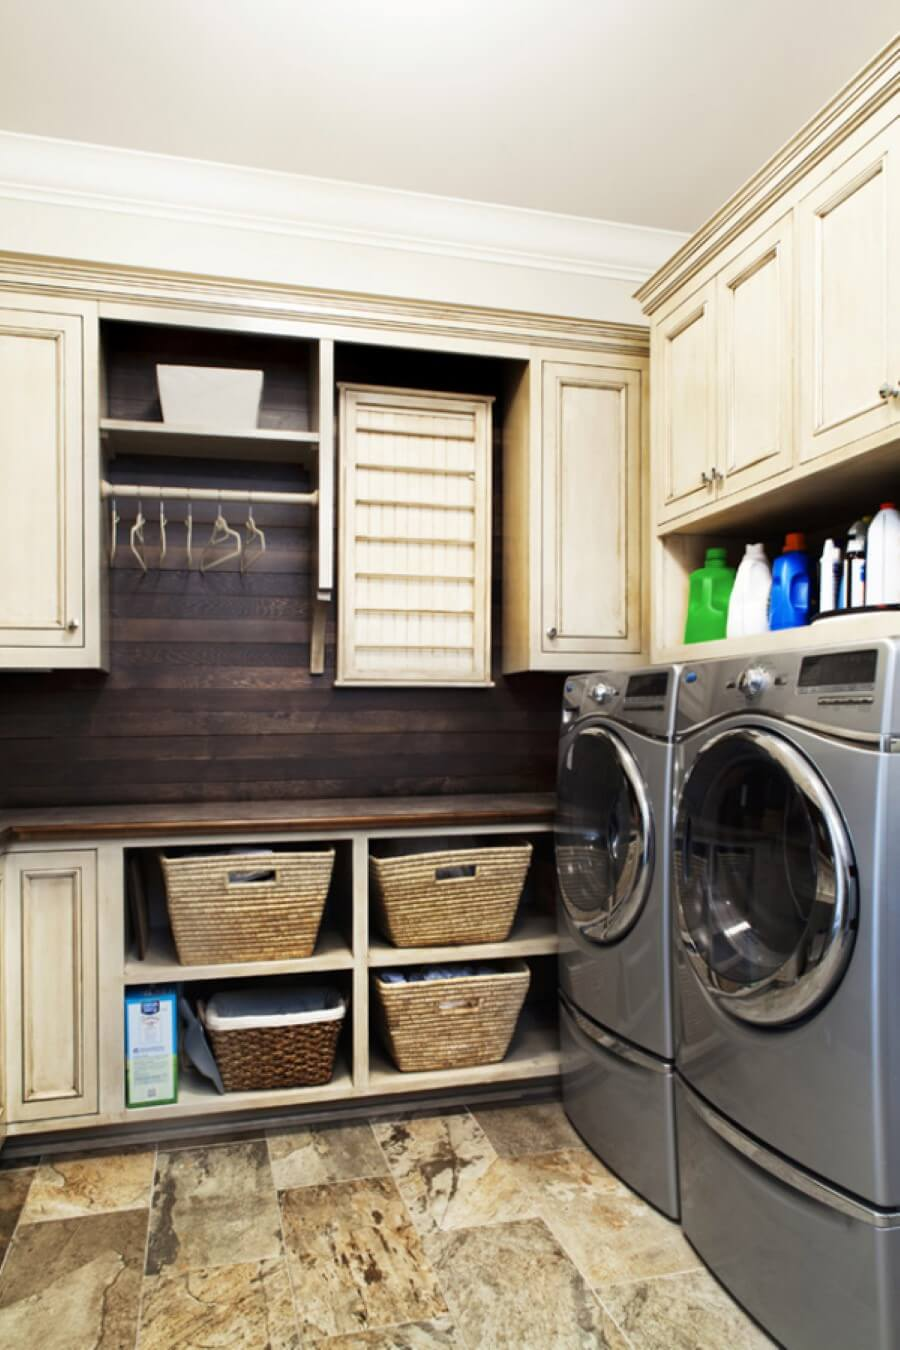 28 Best Small Laundry Room Design Ideas for 2020 on Small Laundry Room Cabinets  id=42893